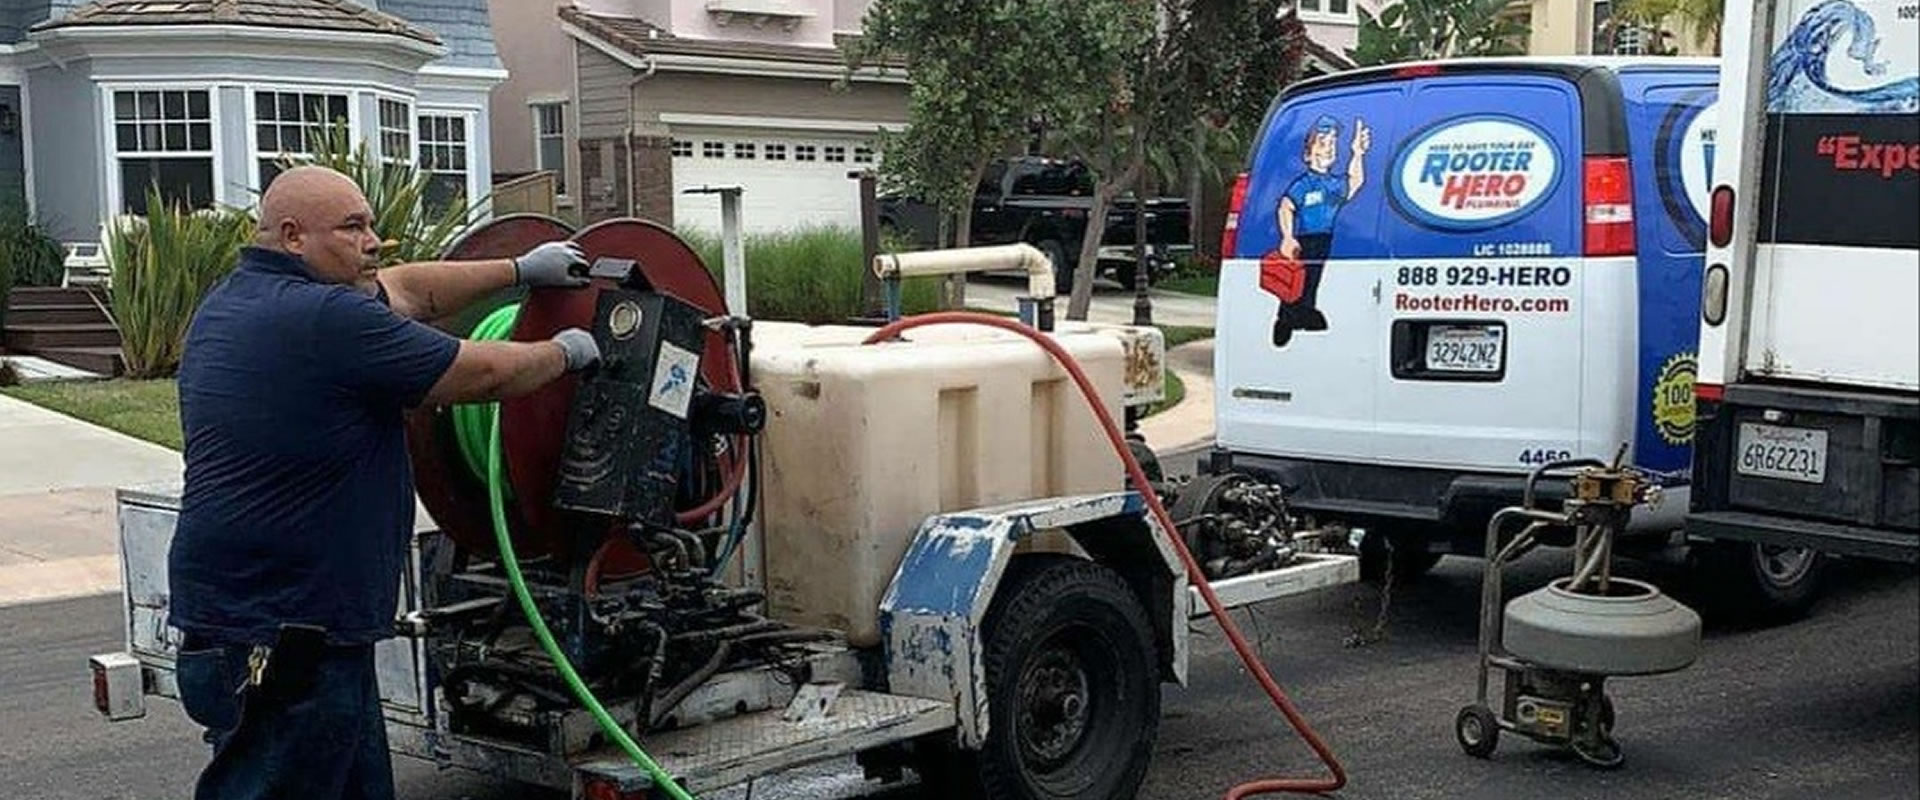 Drain Cleaning in Morgan Hill